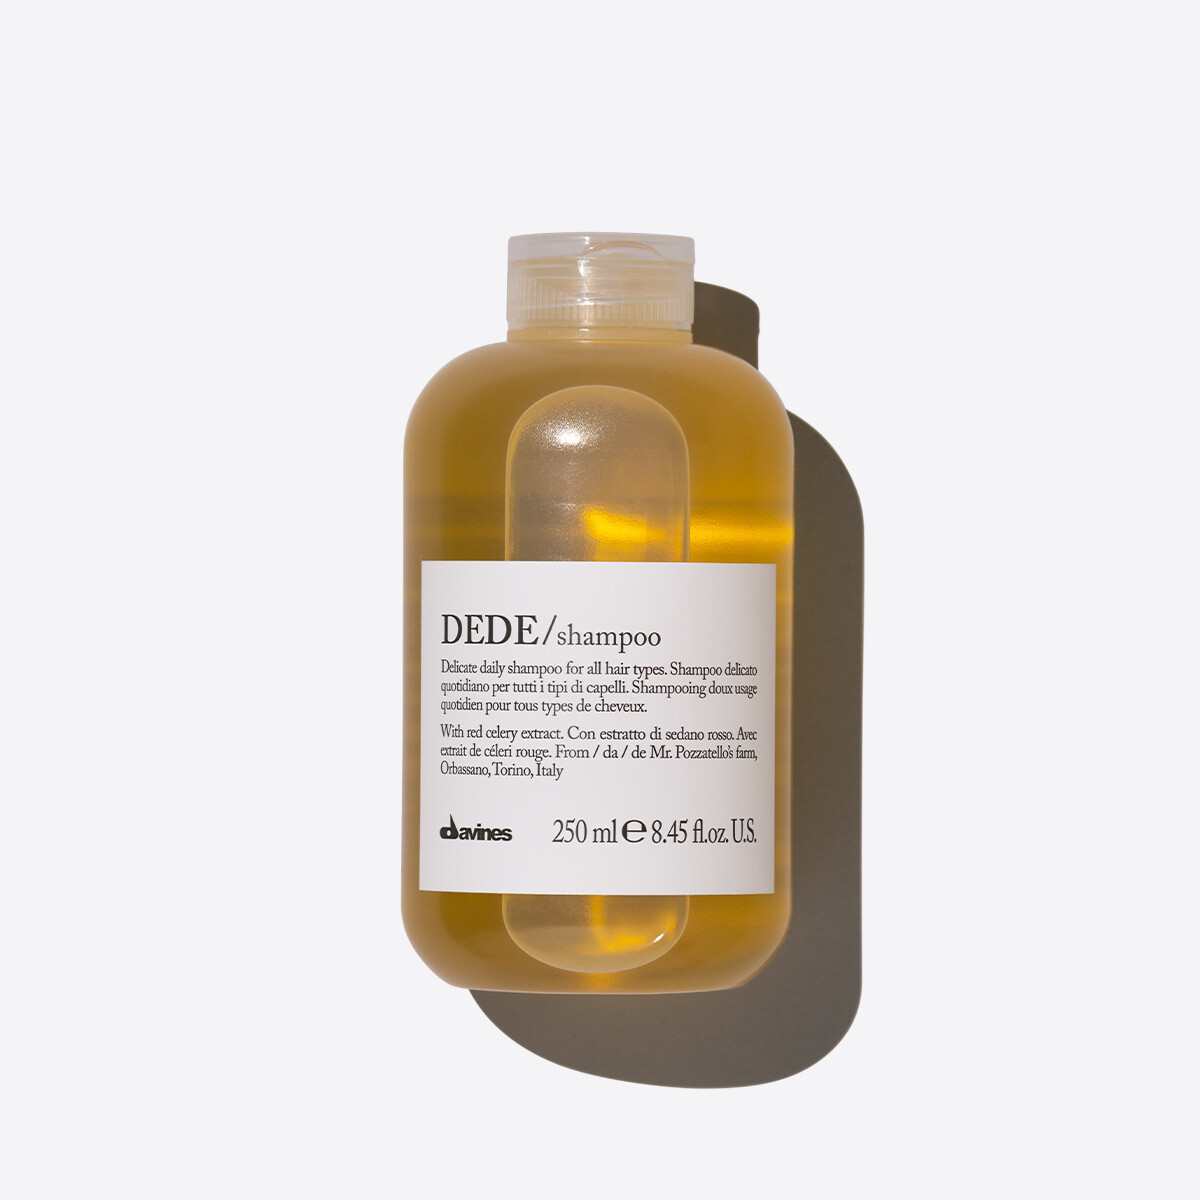 DEDE/shampoo 250 ml